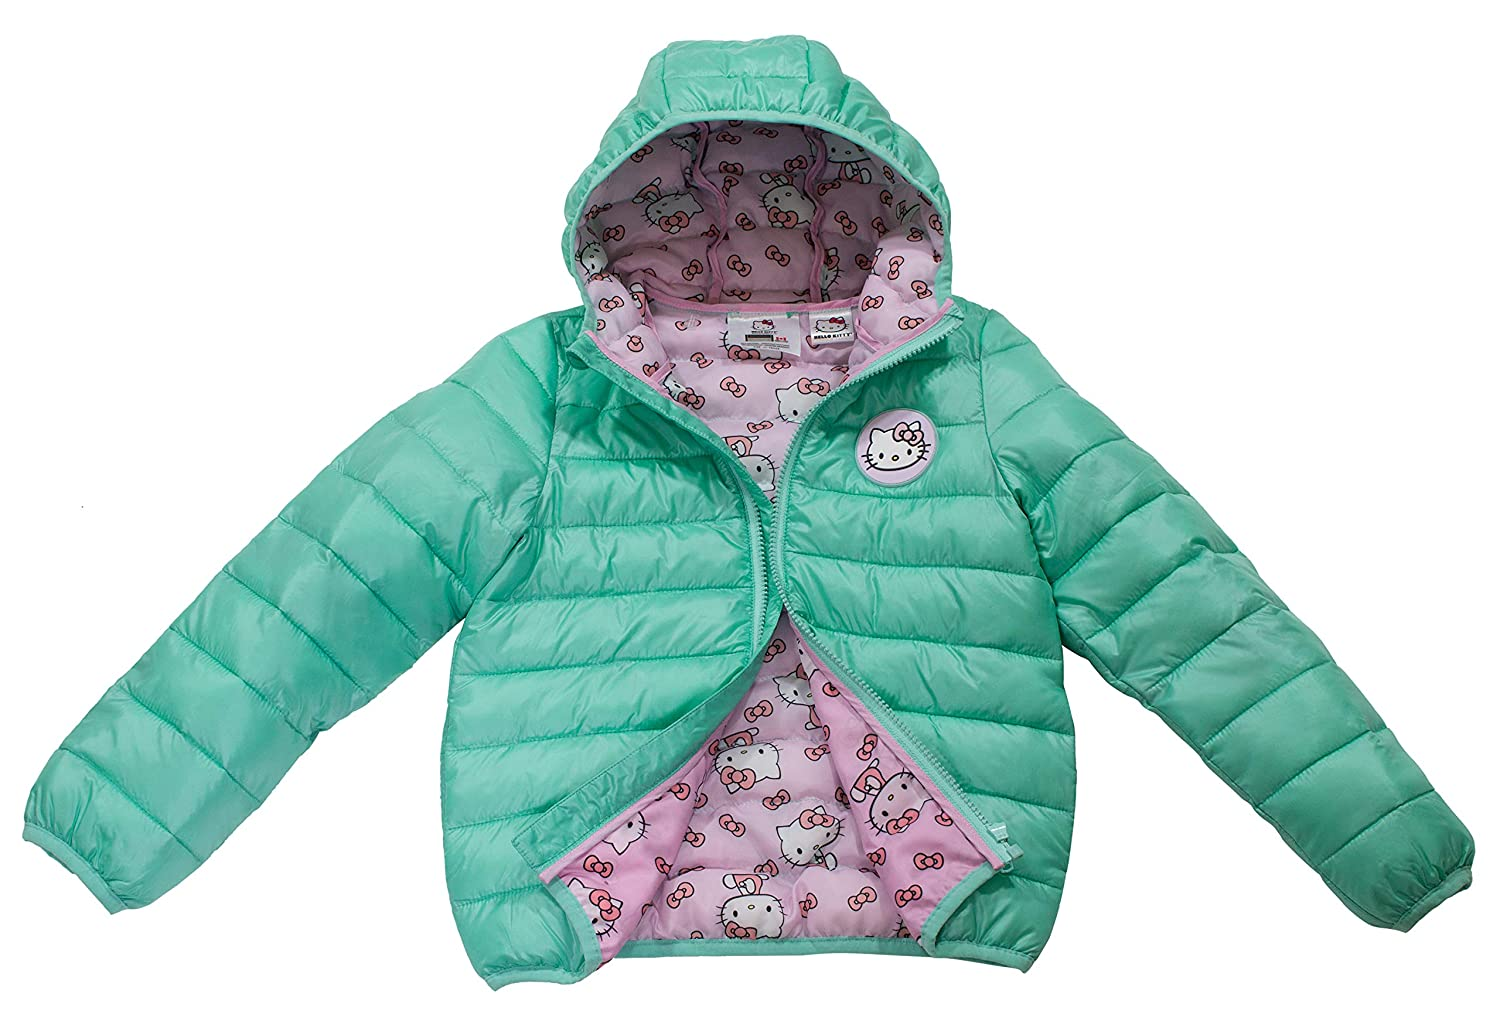 Sanrio Hello Kitty Toddler/Girls Ultralight Hooded Puffer Jacket, Size 2T-5T & 4-6X, Official Licensed Product